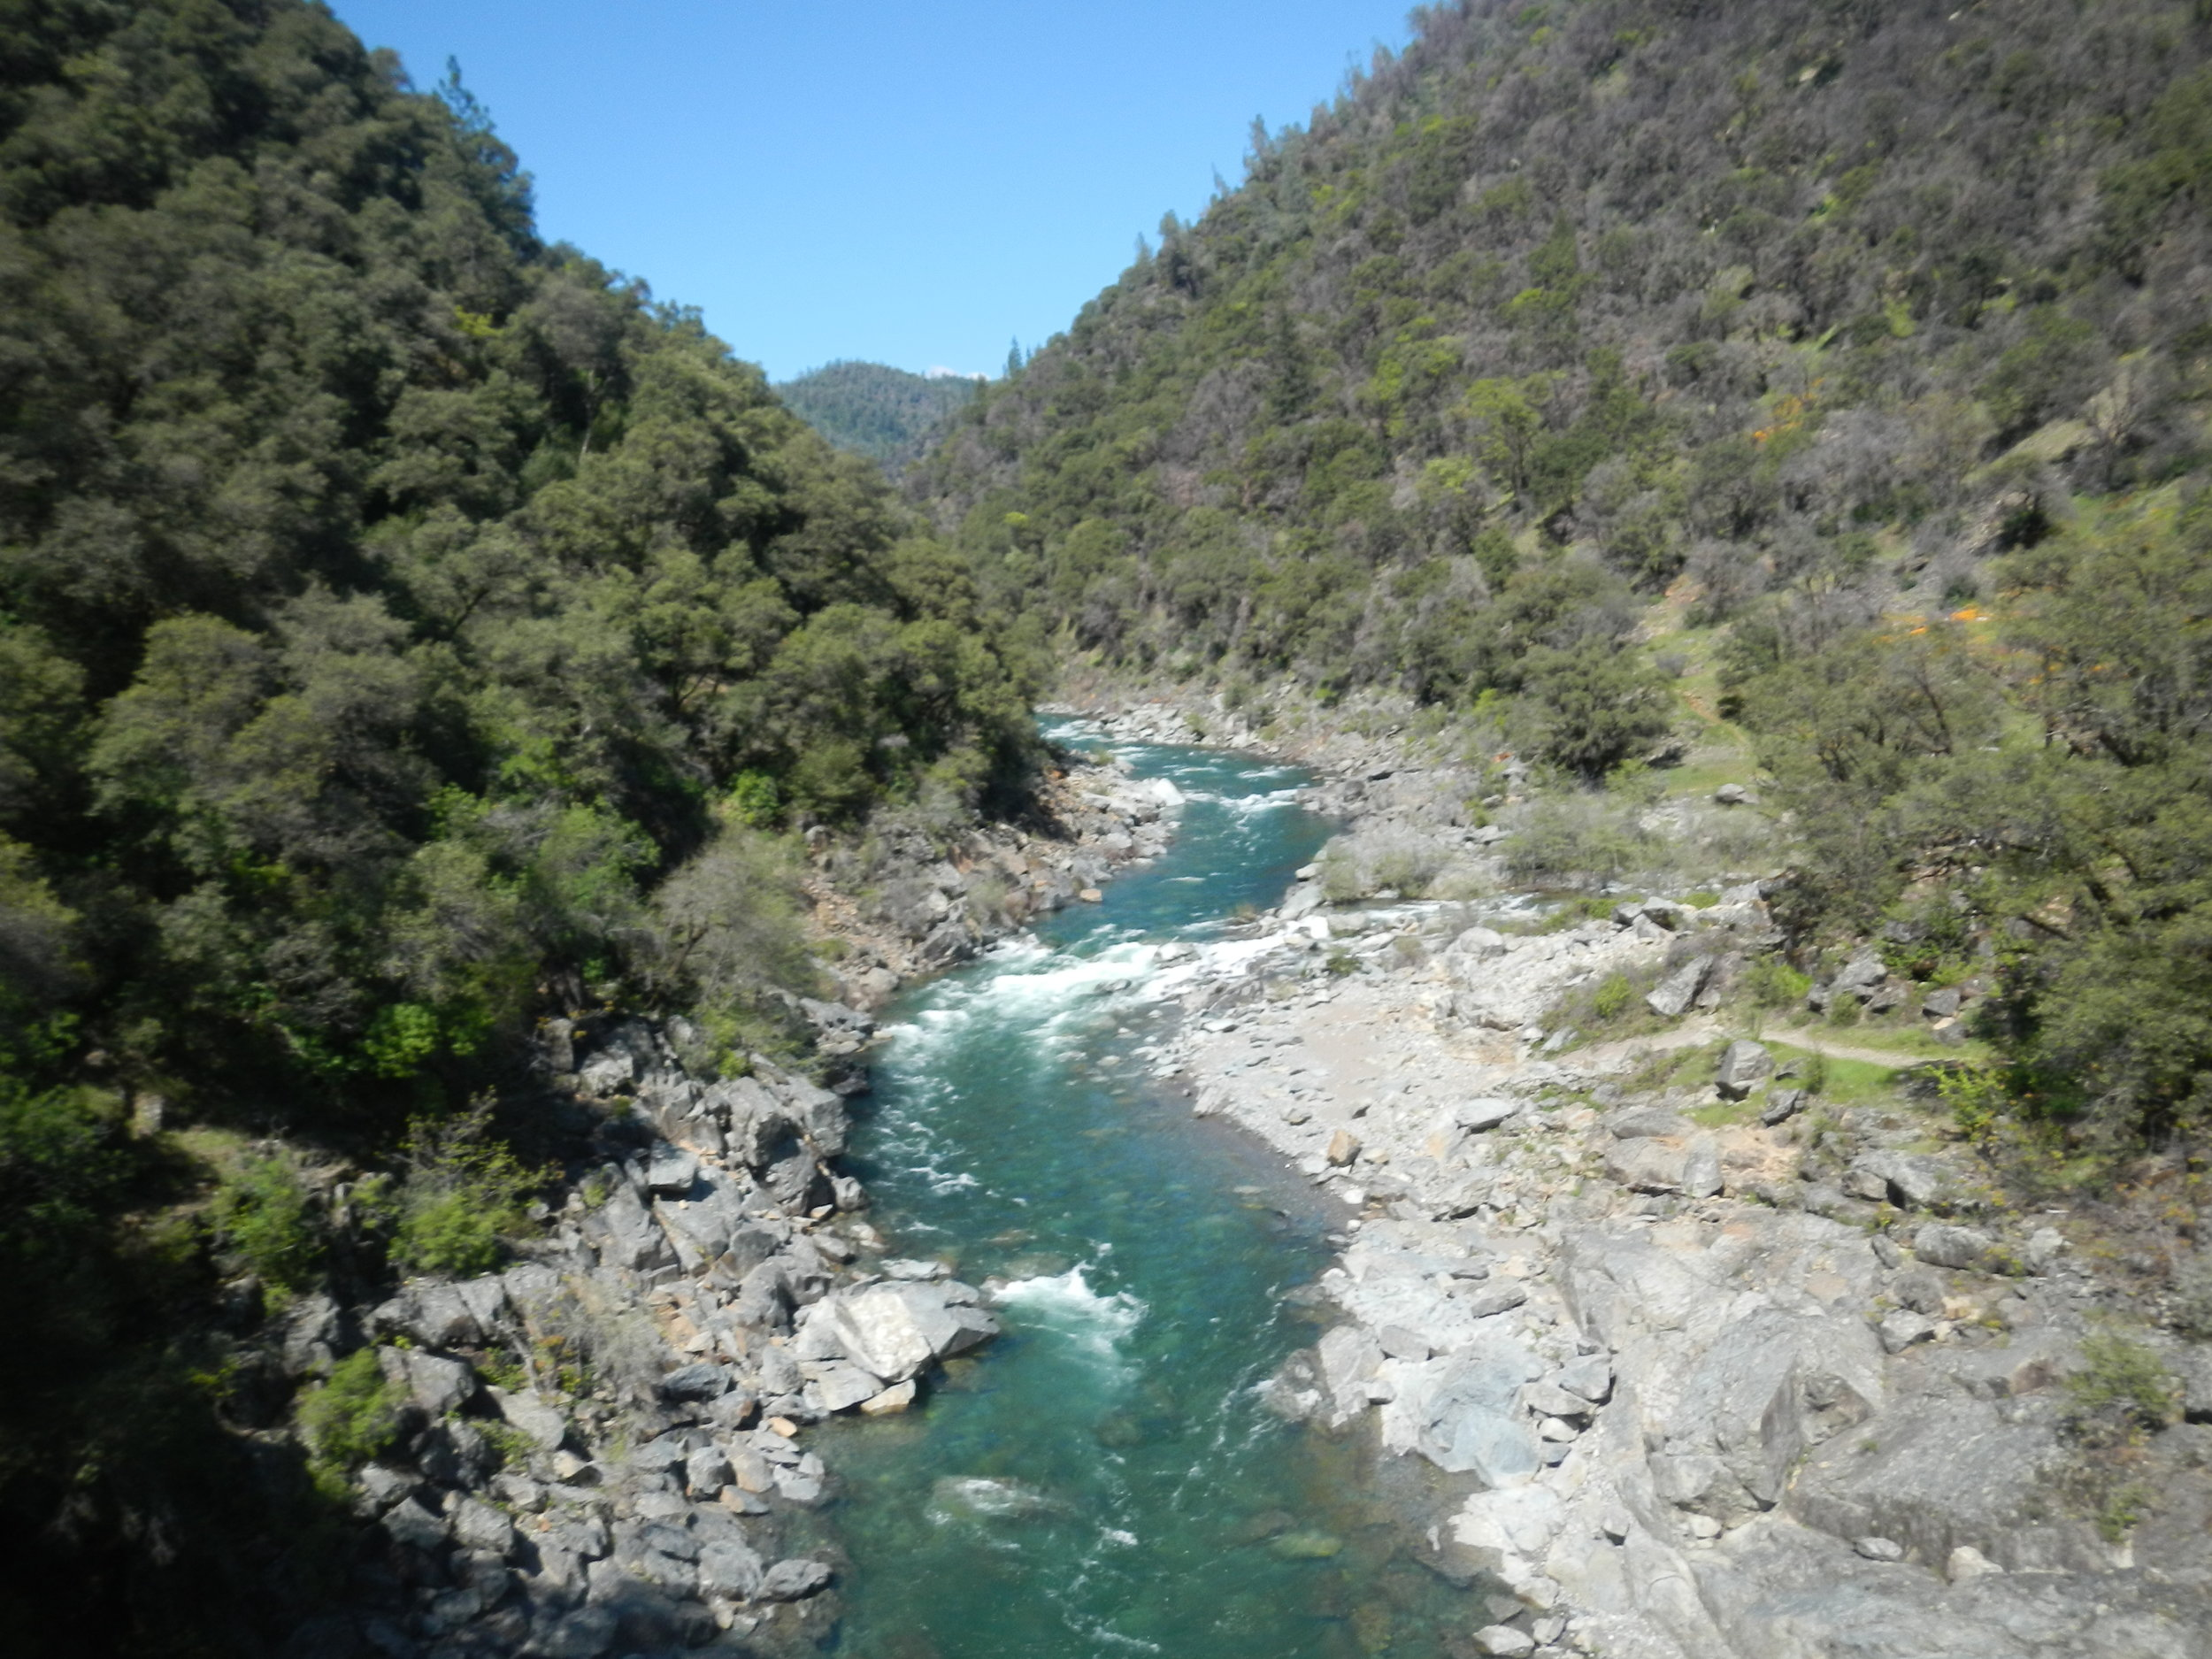 North Fork American River - Intermediate (class IV+) whitewater trips on one of California's most beautiful and exciting class IV Spring rivers.